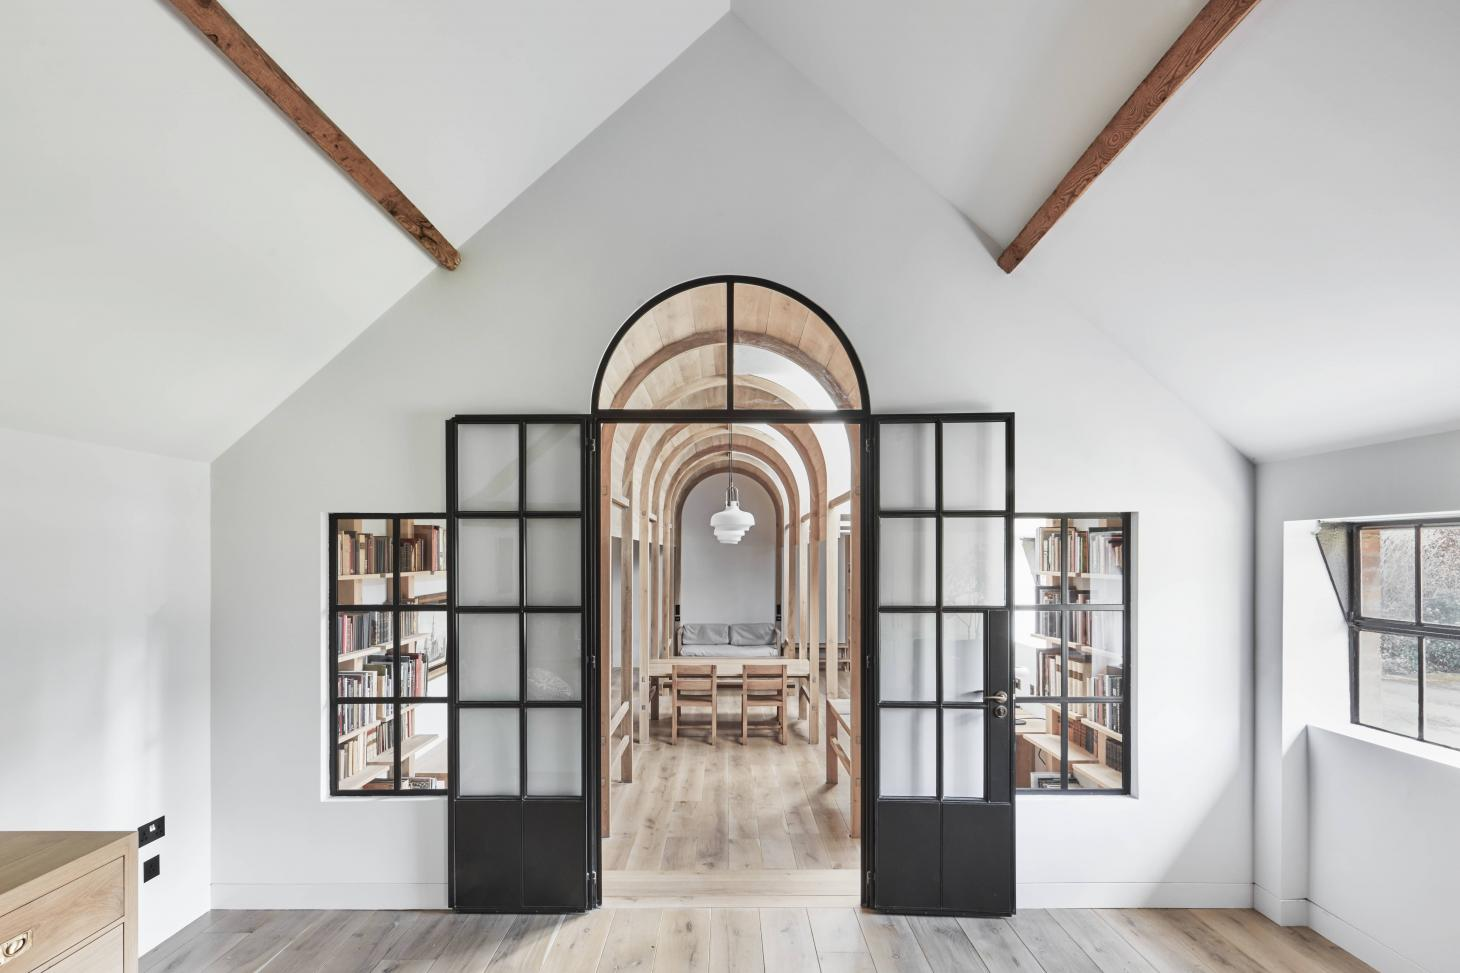 wood and brick in tactile composition define Dorset library in renovated outbuilding